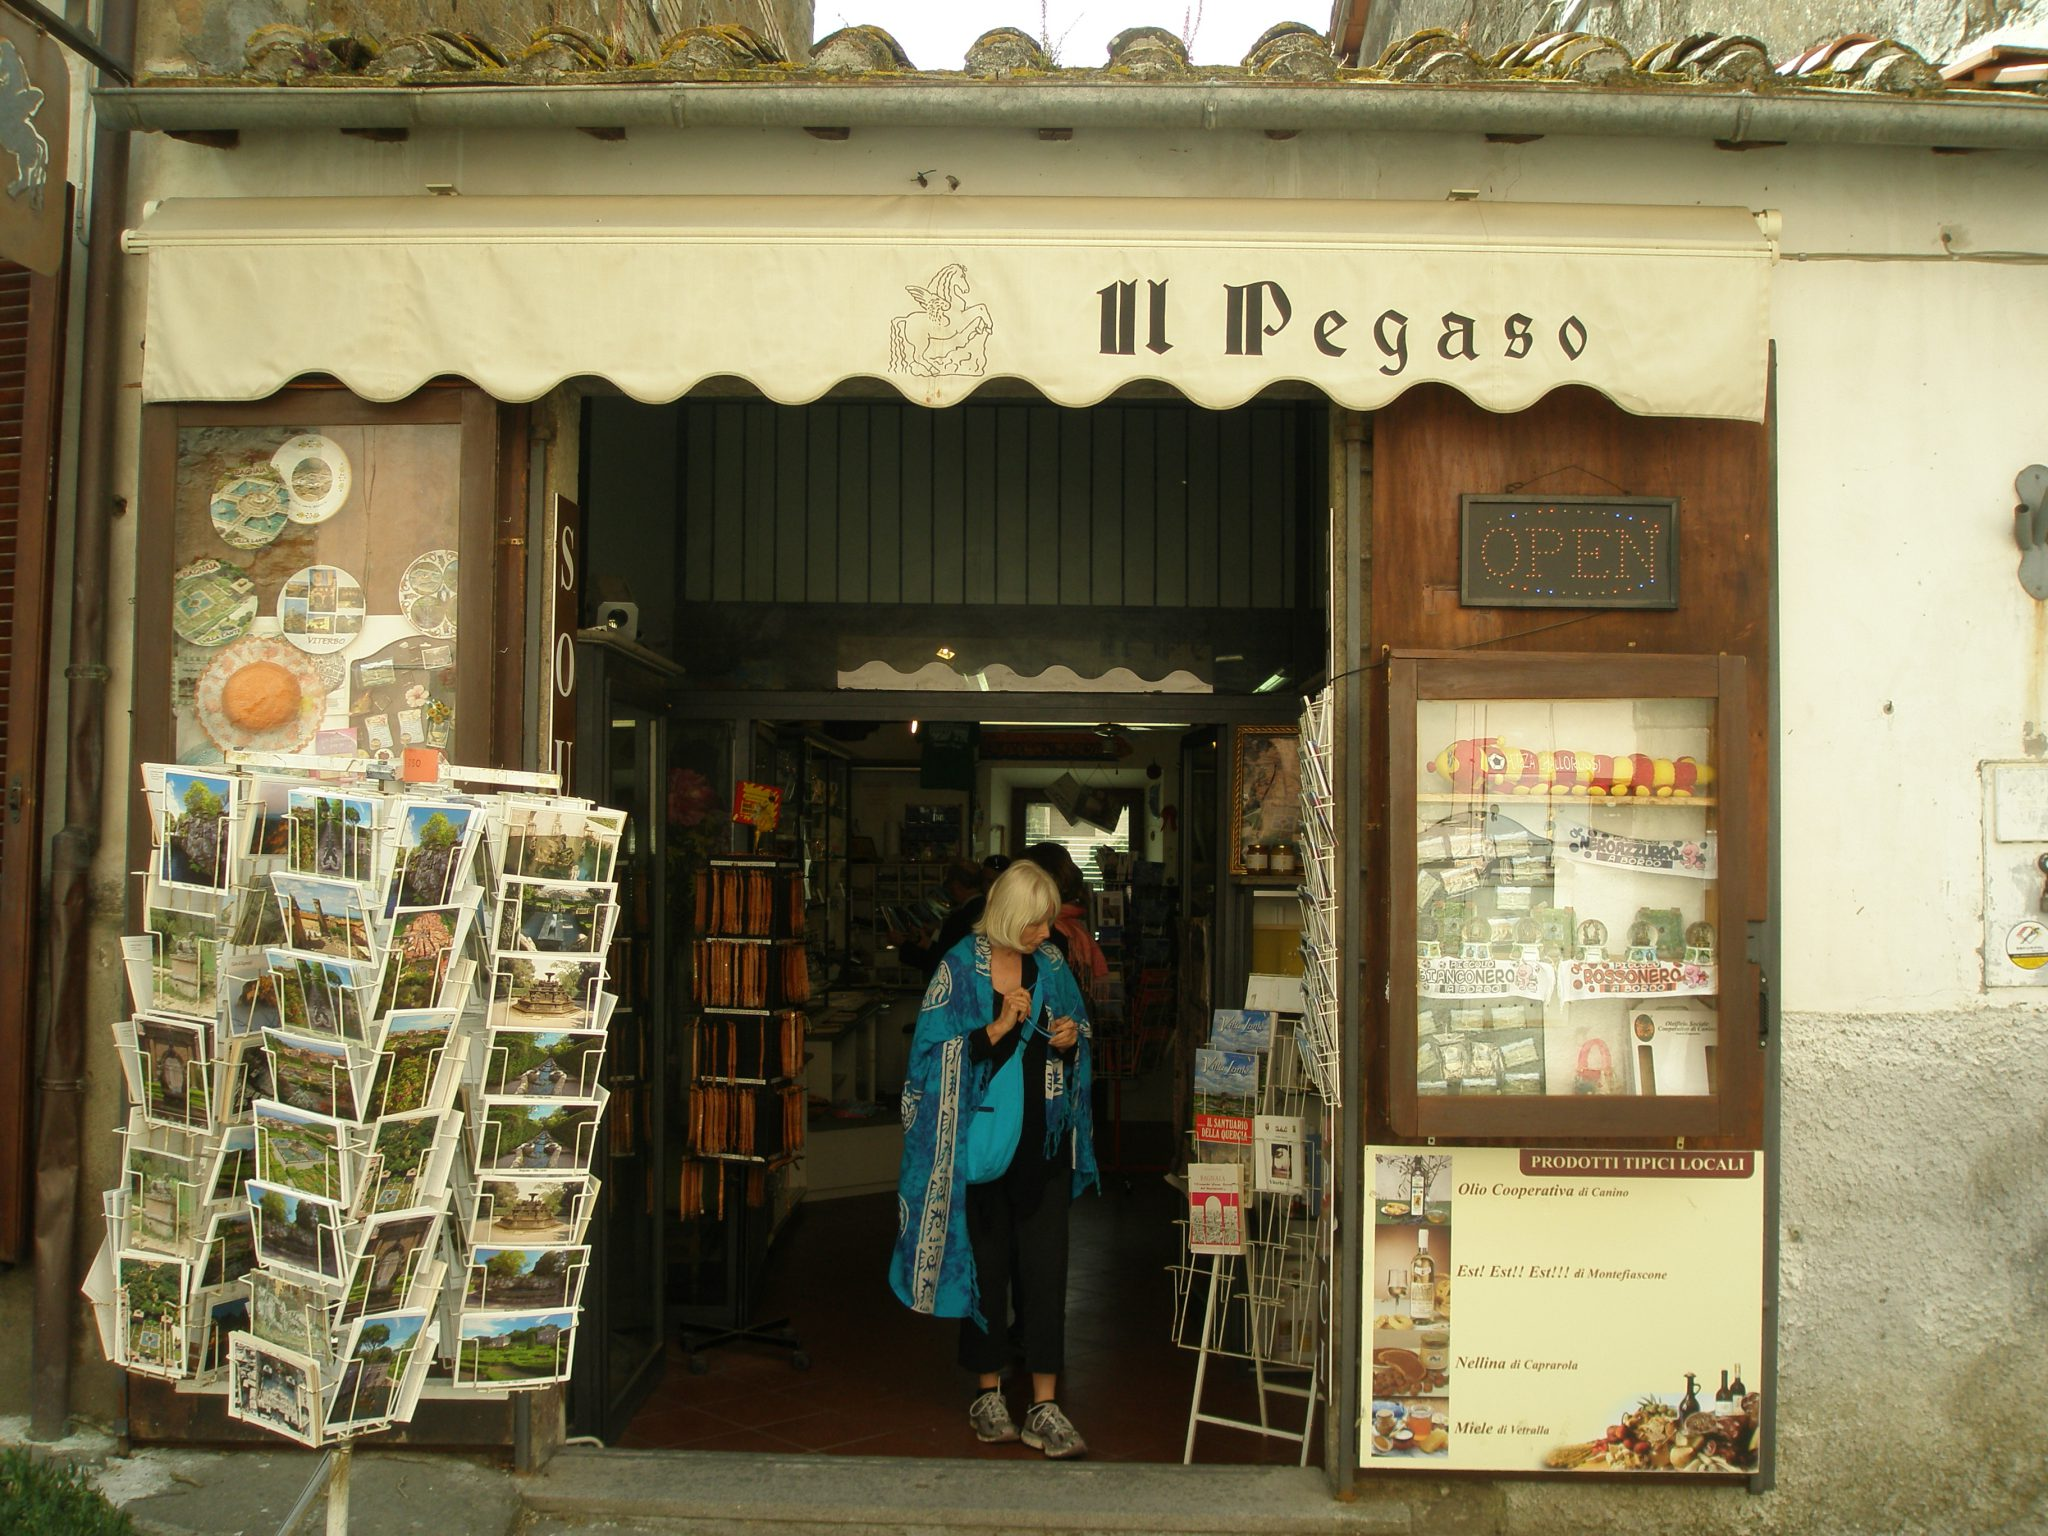 Donn inspects the goods. Il Pegaso Bookshop is located near the Gates to Villa Lante, on Via Jacopo Barozzi, in Bagnaia